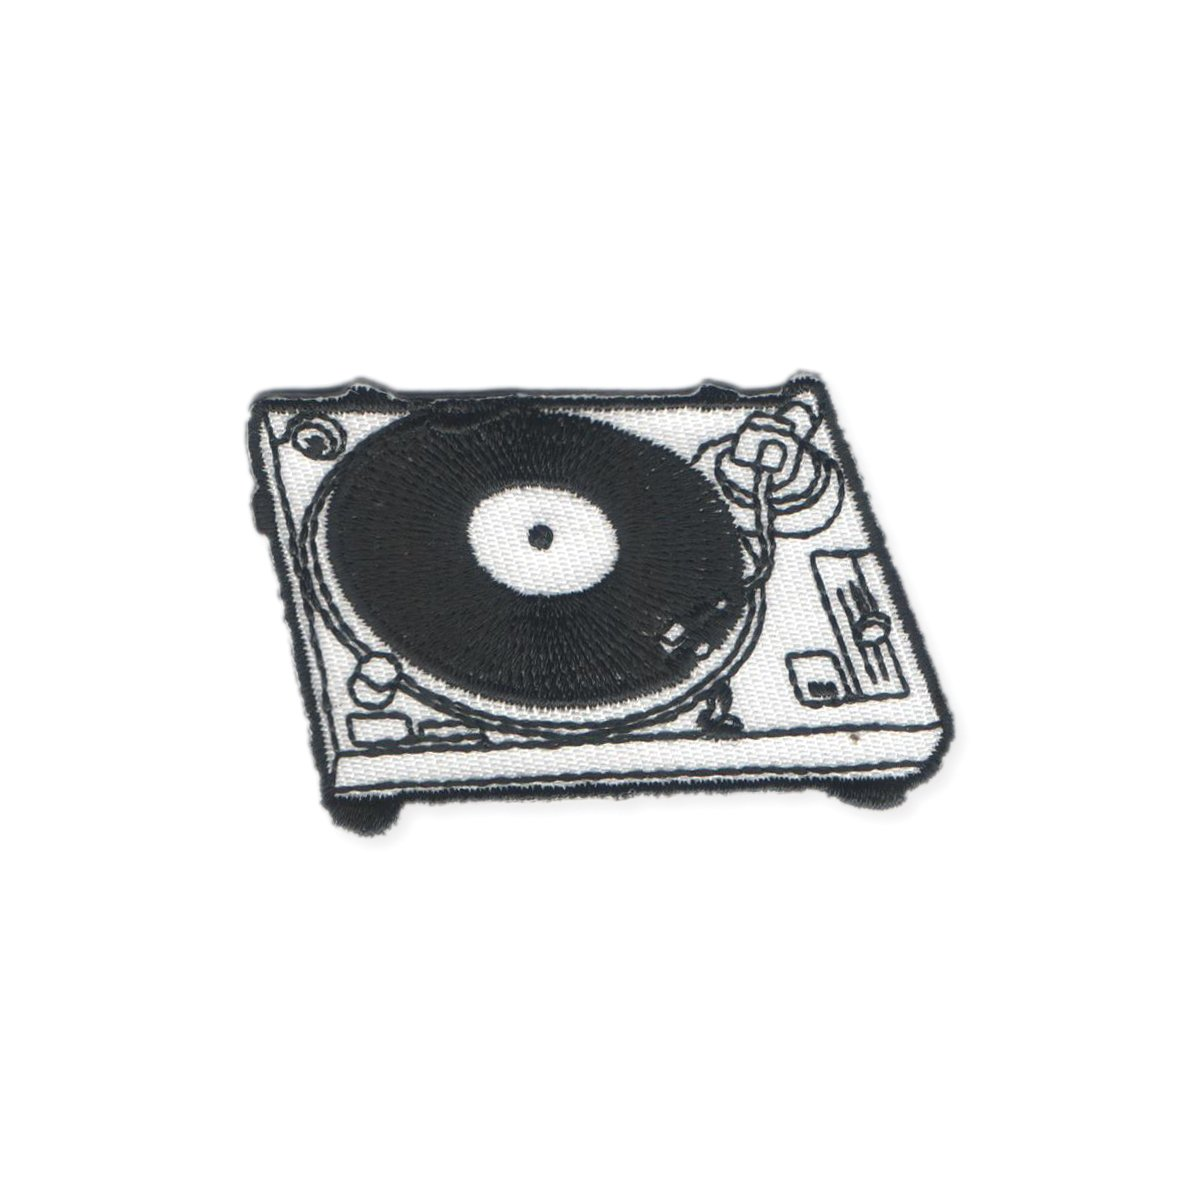 Zad Retro DJ Turntable Embroidered Iron On Patch Applique Black